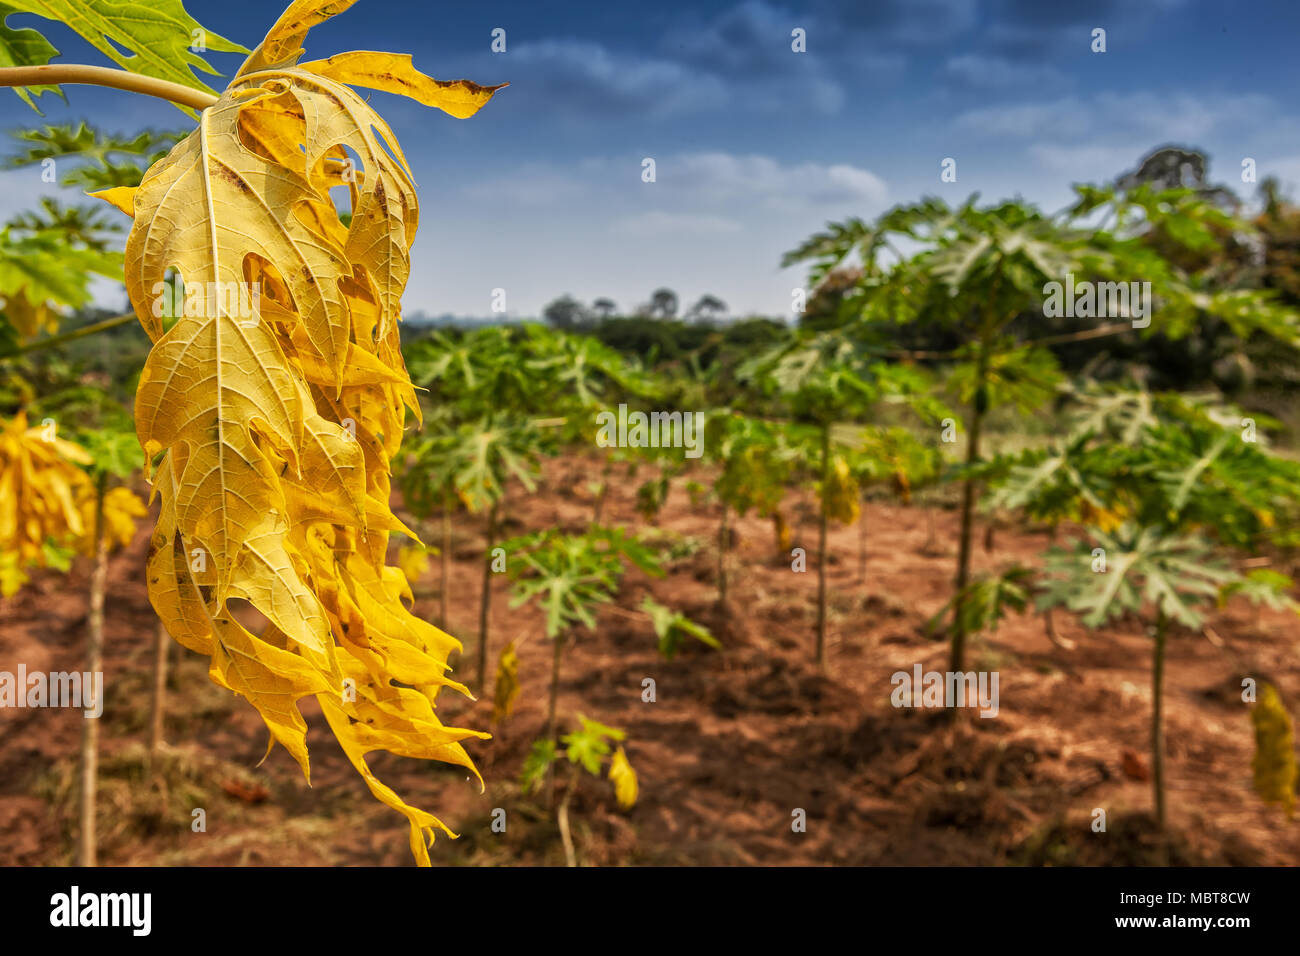 Dry and yellow leaf in agriculture field. - Stock Image